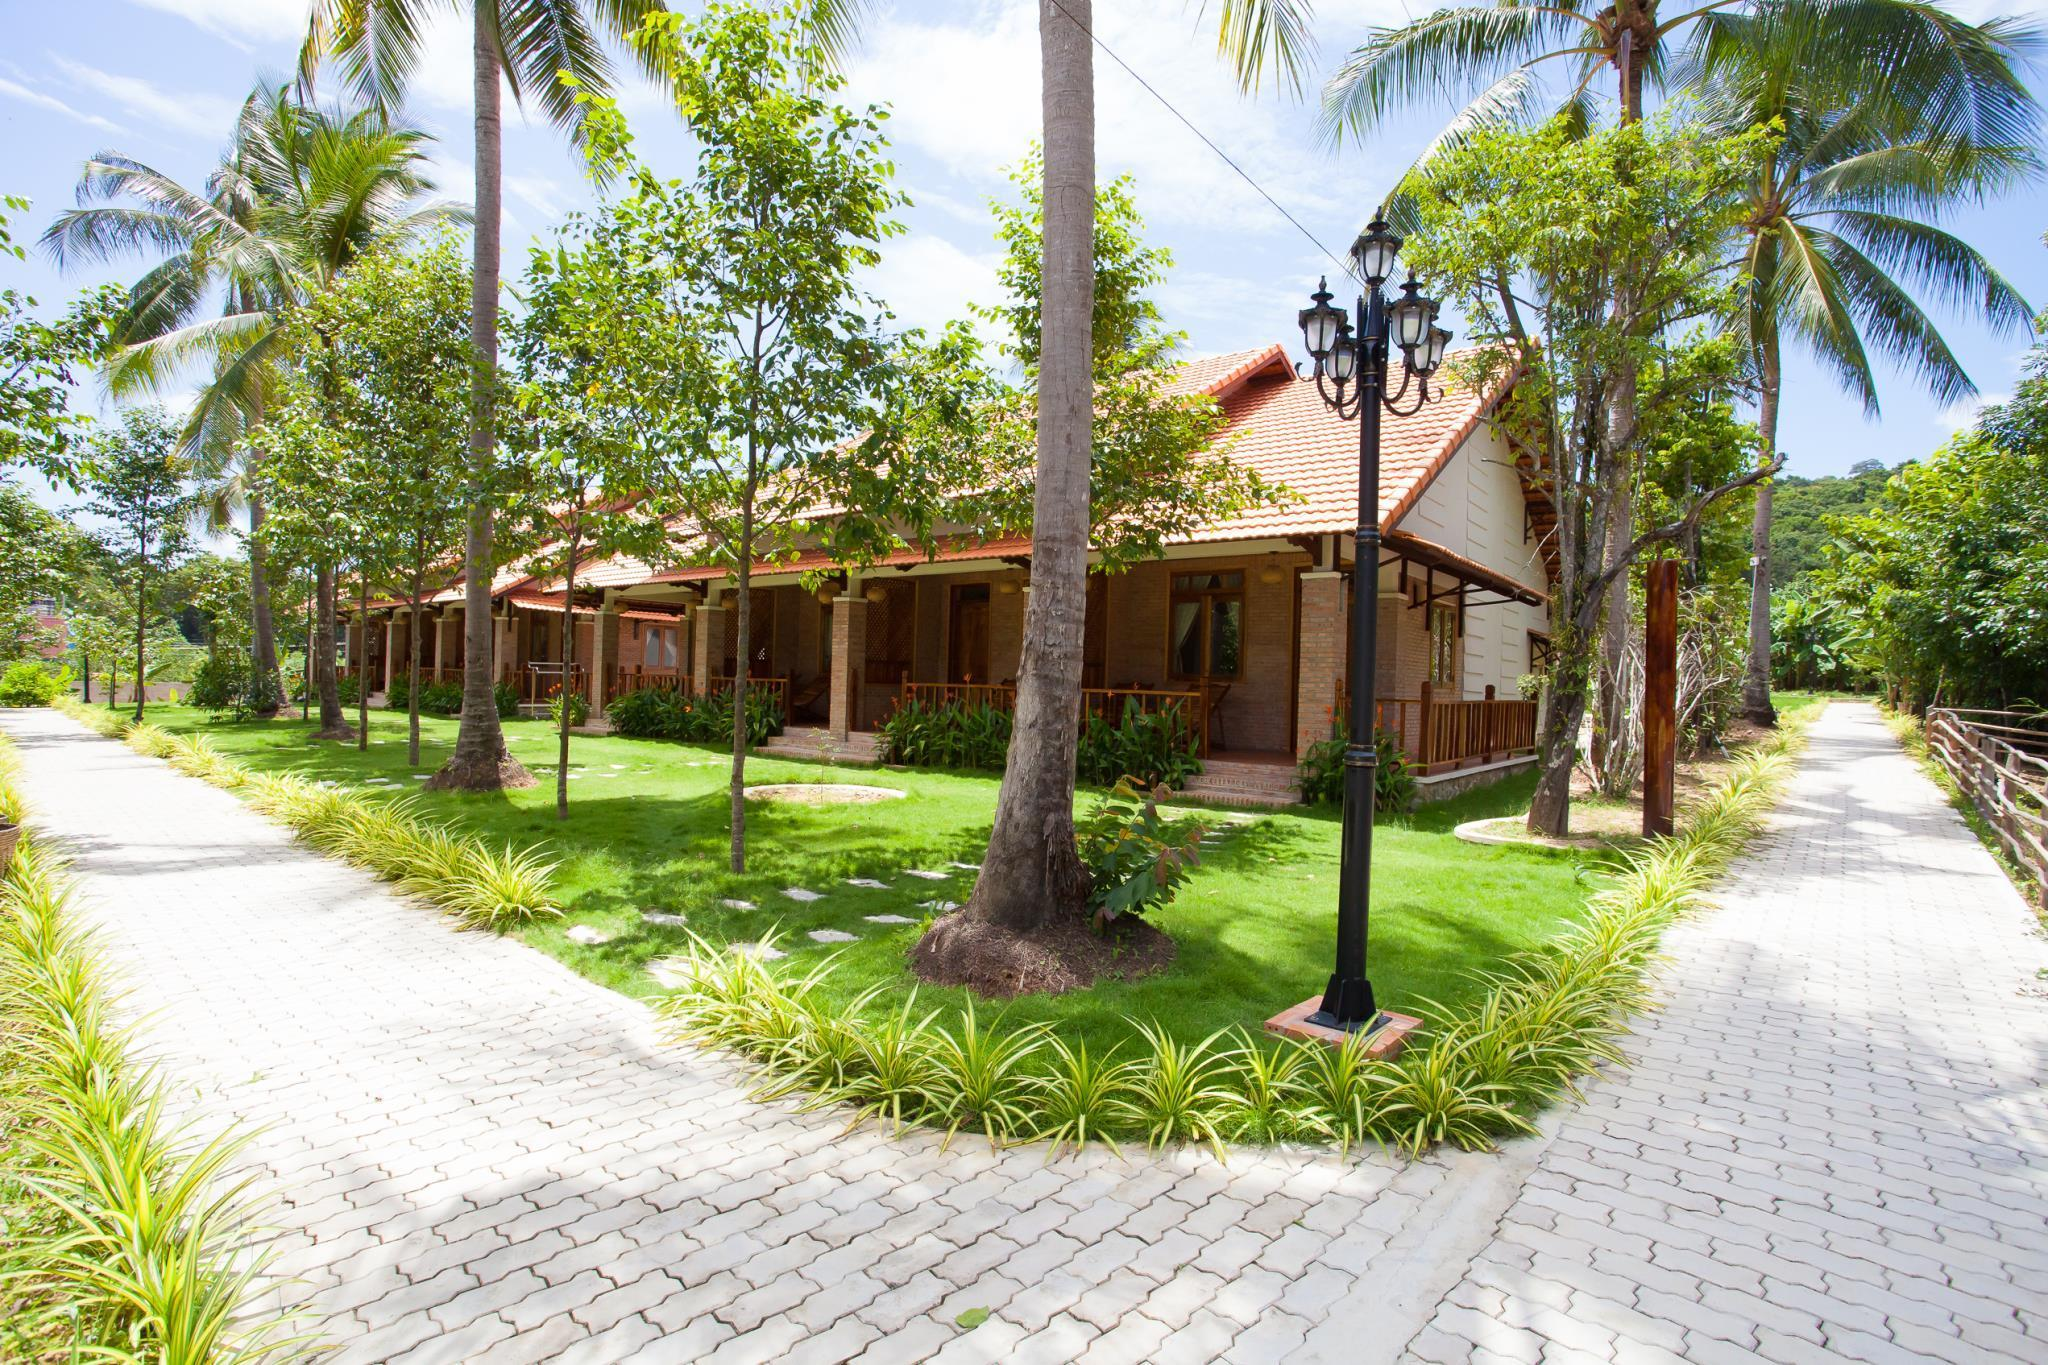 Best Price on The Garden House Phu Quoc in Phu Quoc Island + Reviews!